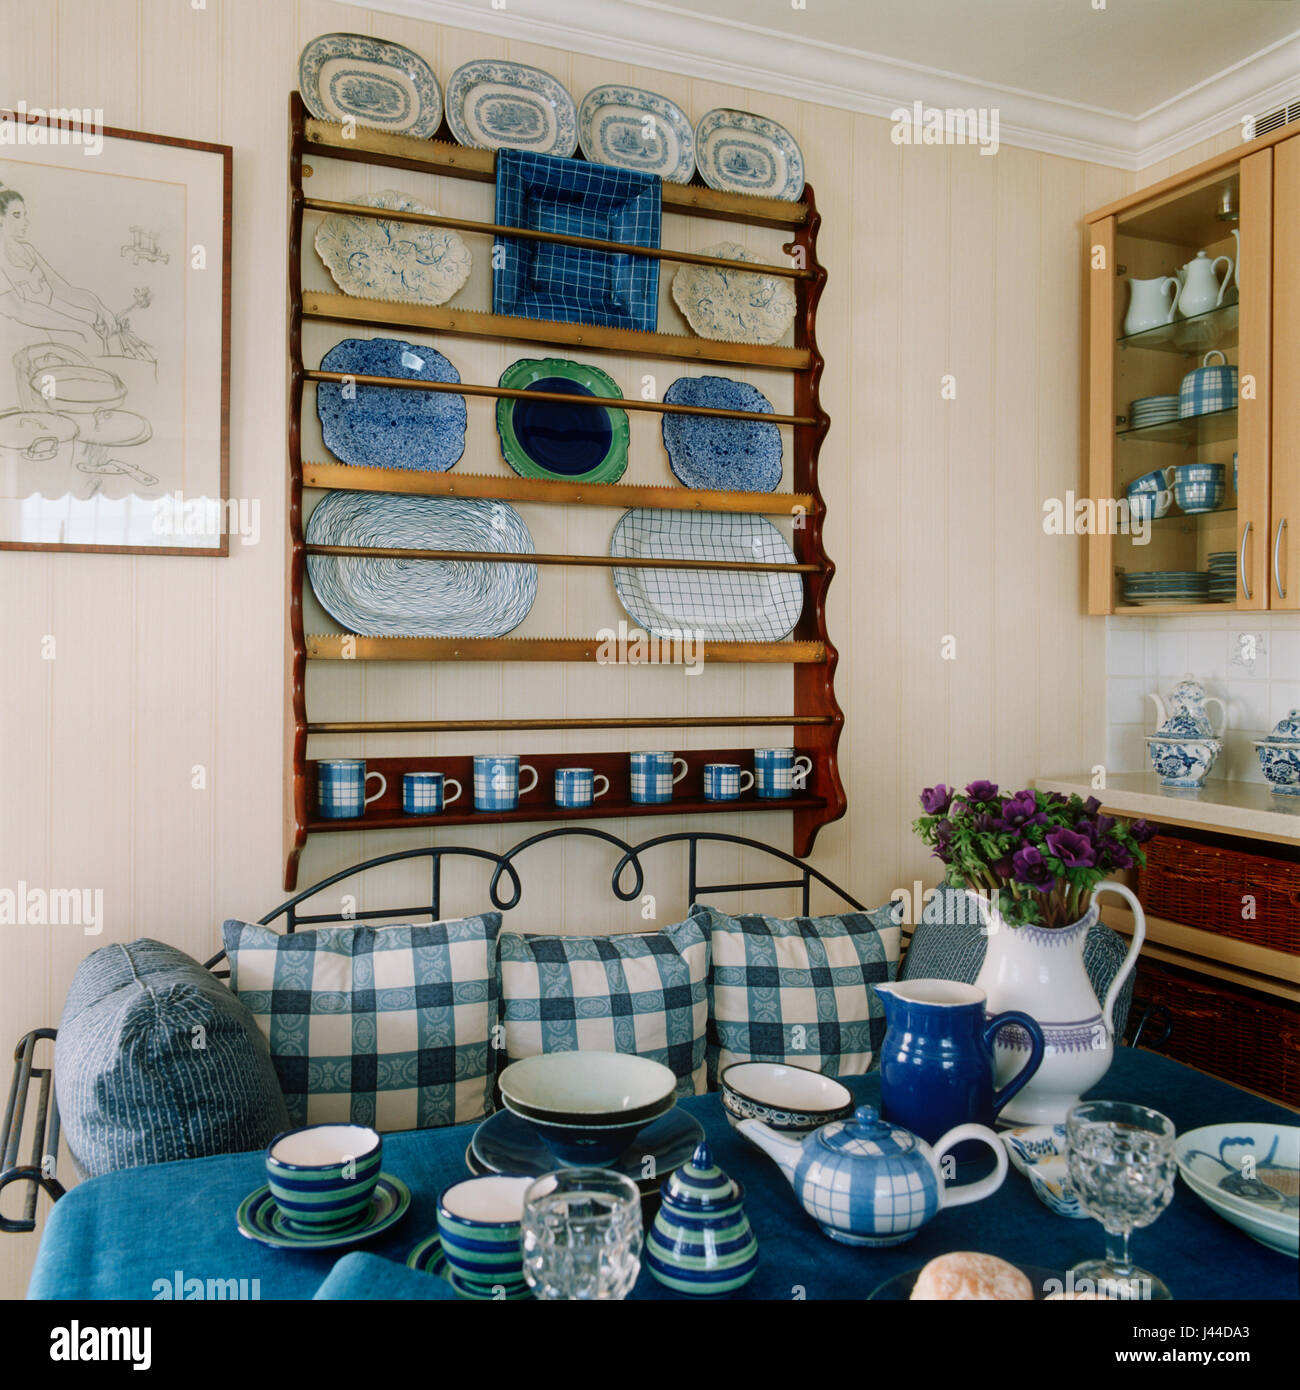 English Pottery Stockfotos & English Pottery Bilder - Alamy